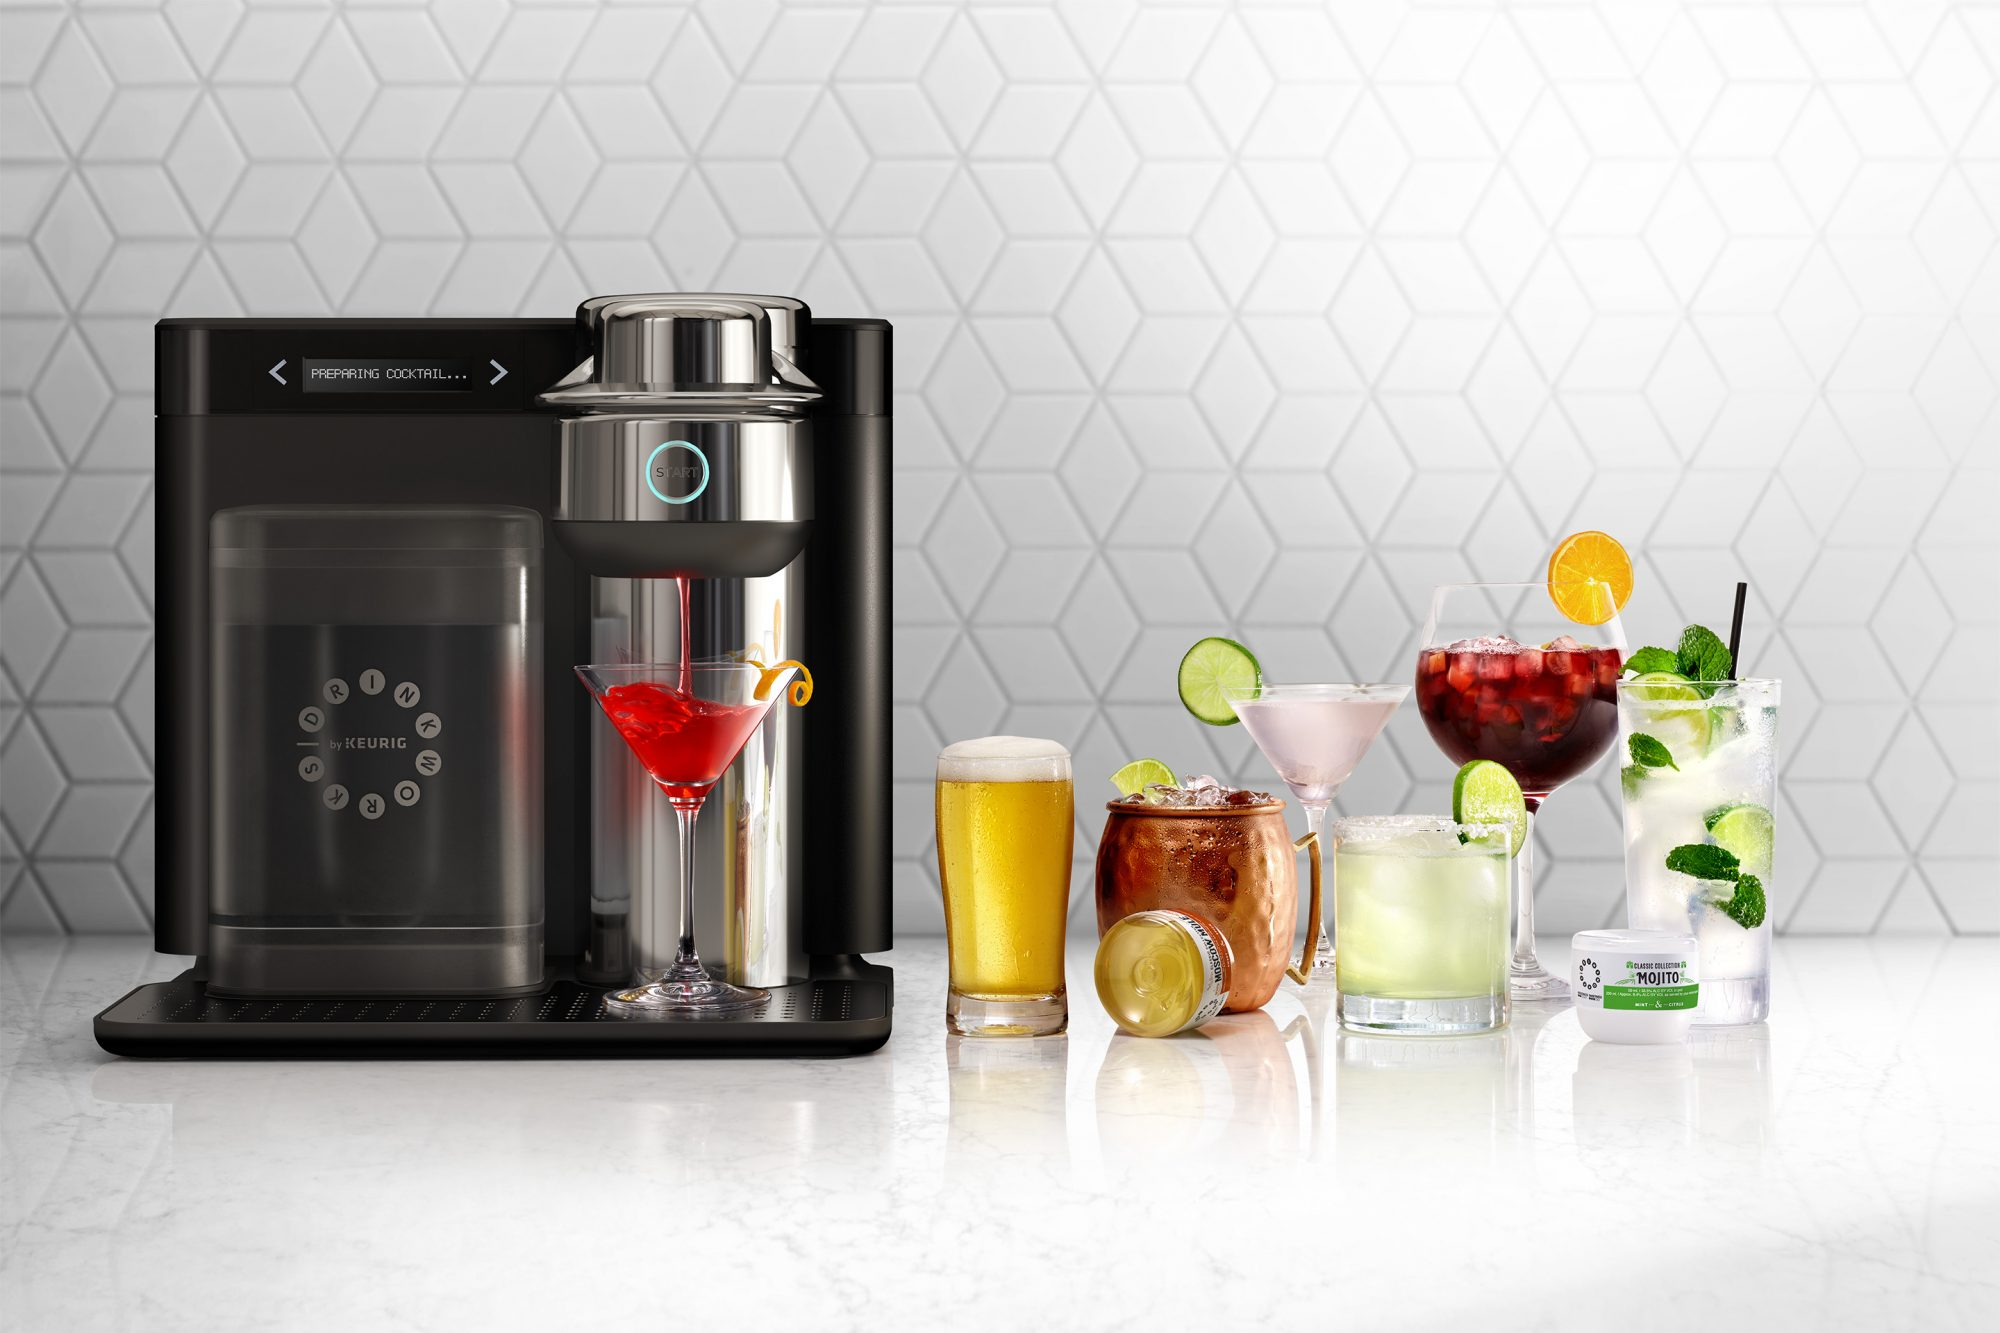 Keurig and Anheuser-Busch Are Preparing K-Cups for Cocktails